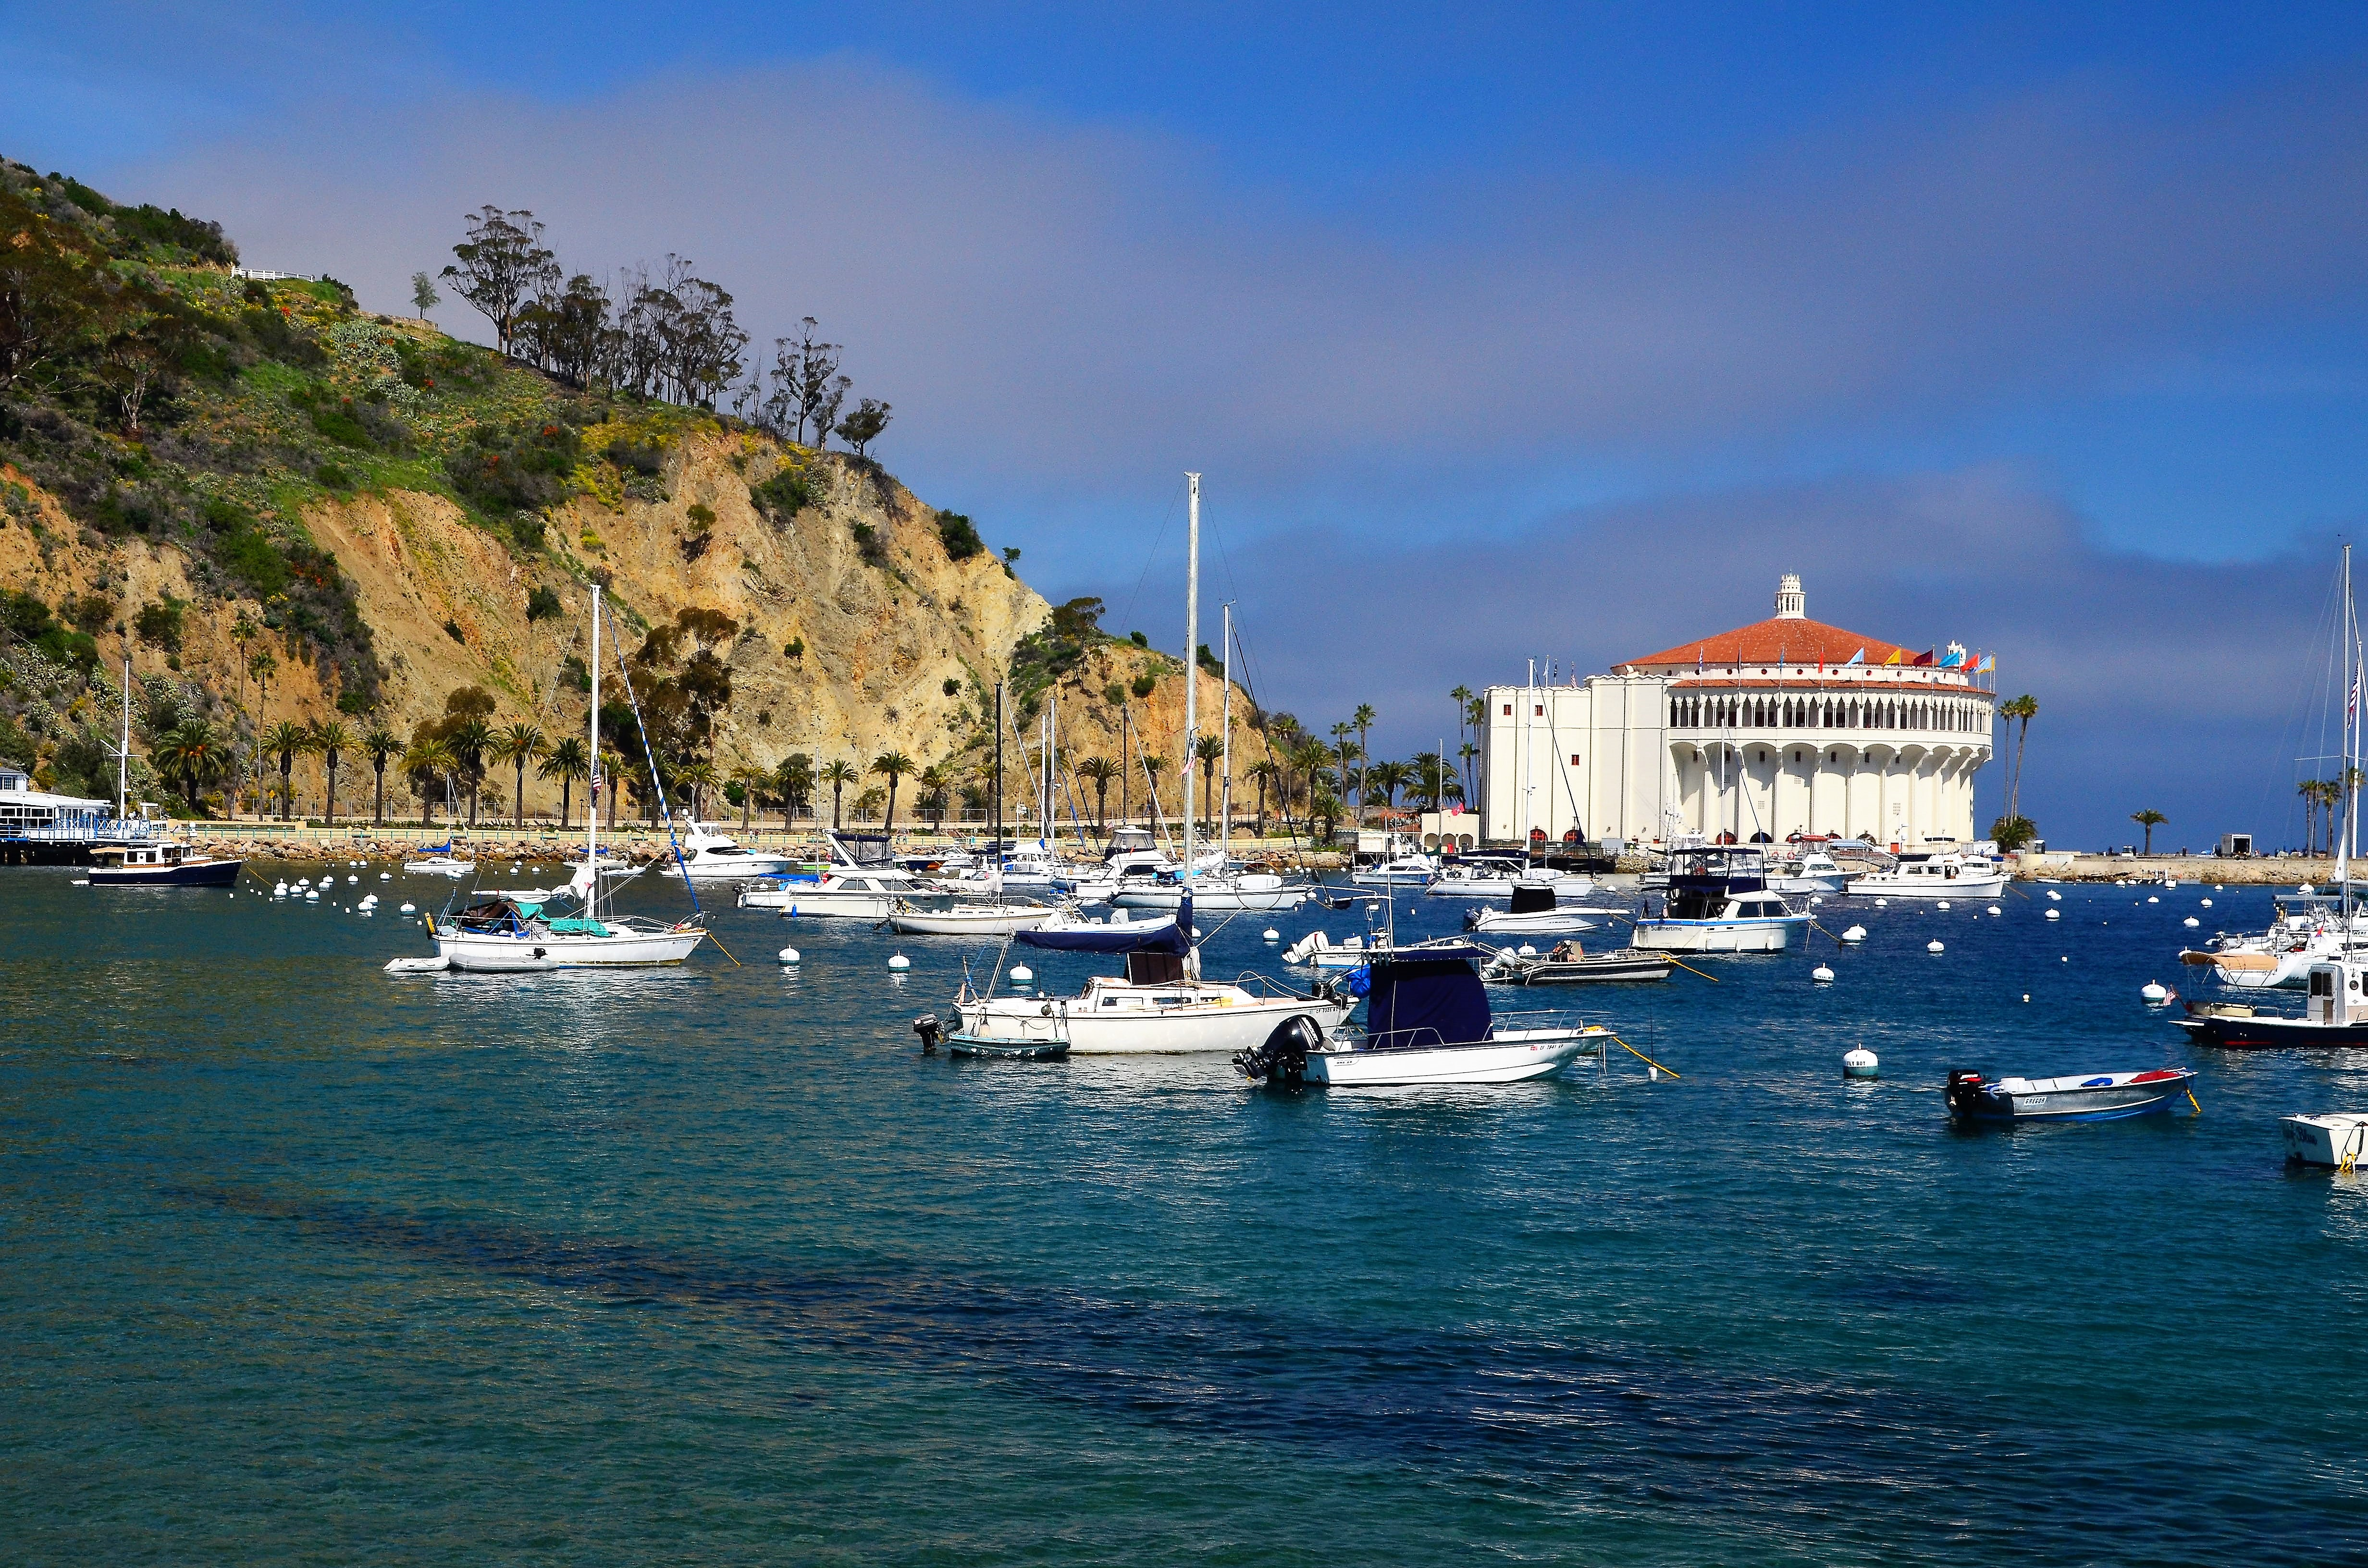 This view of Avalon Harbor and the landmark Casino greets passengers as they disembark from Catalina Express ferries. The dock and most of the town's attractions are within walking distance, and cars are forbidden in certain areas, so Avalon a pedestrian-friendly town.